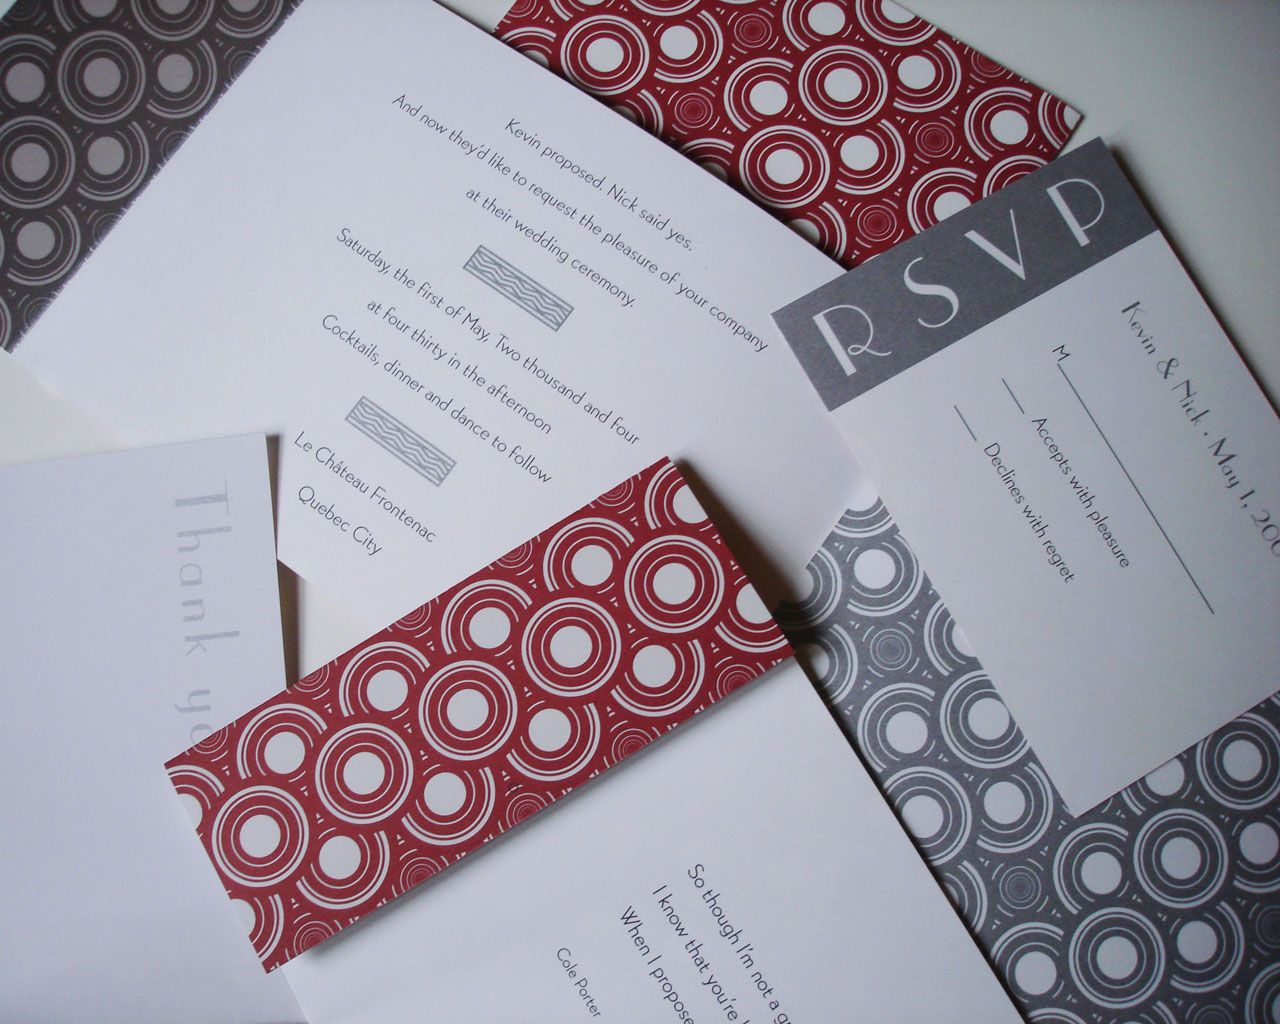 For an art deco themed wedding we created these striking for an art deco themed wedding we created these striking invitations printed in red and stopboris Image collections